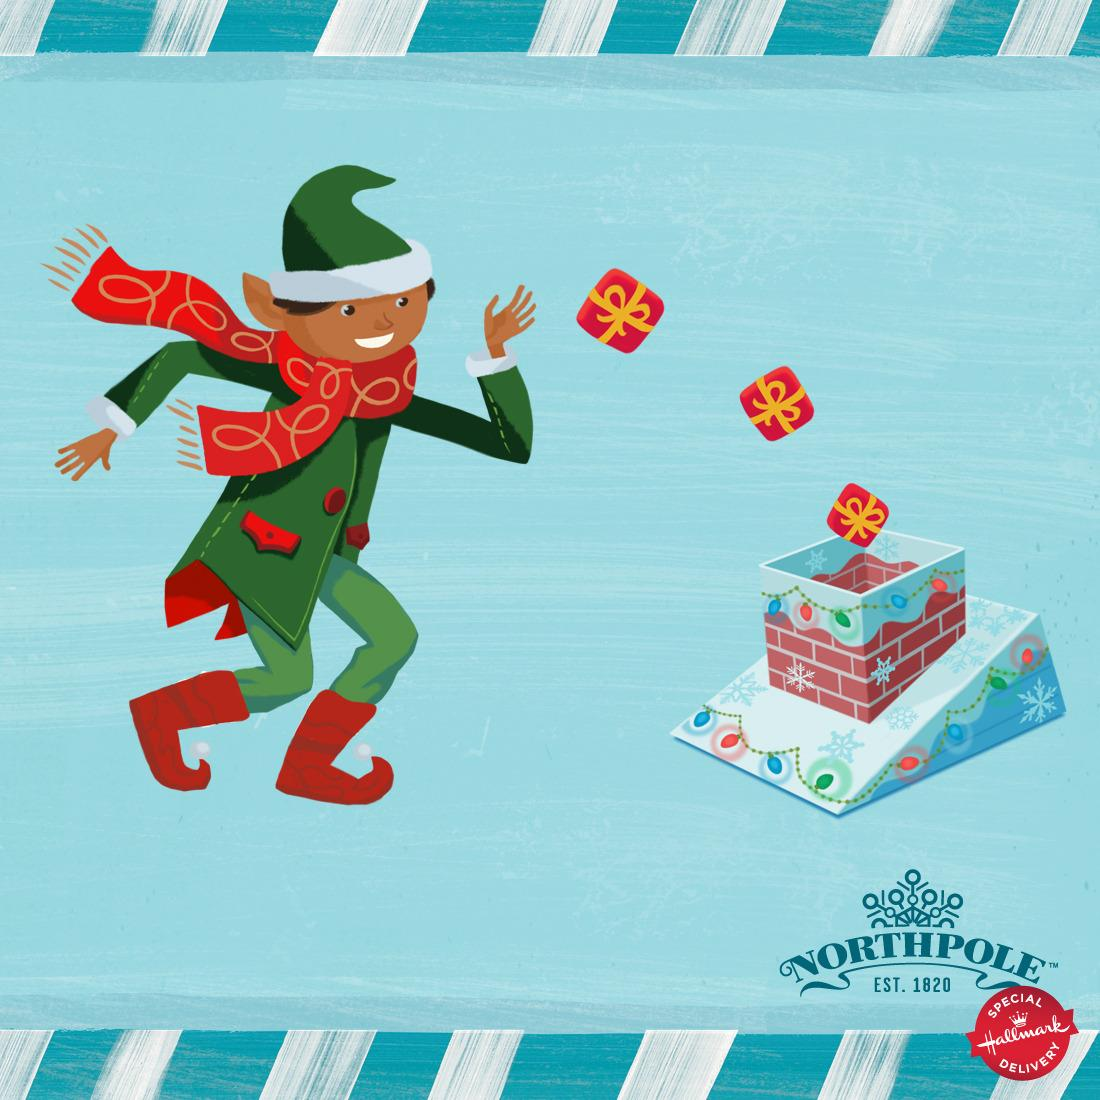 Christmas beanbag toss? Yes, please! RT for chance to #win a #Northpole Rooftop Drop game: http://t.co/J2Ofkv1Urs http://t.co/ZlkDtCiWJ7